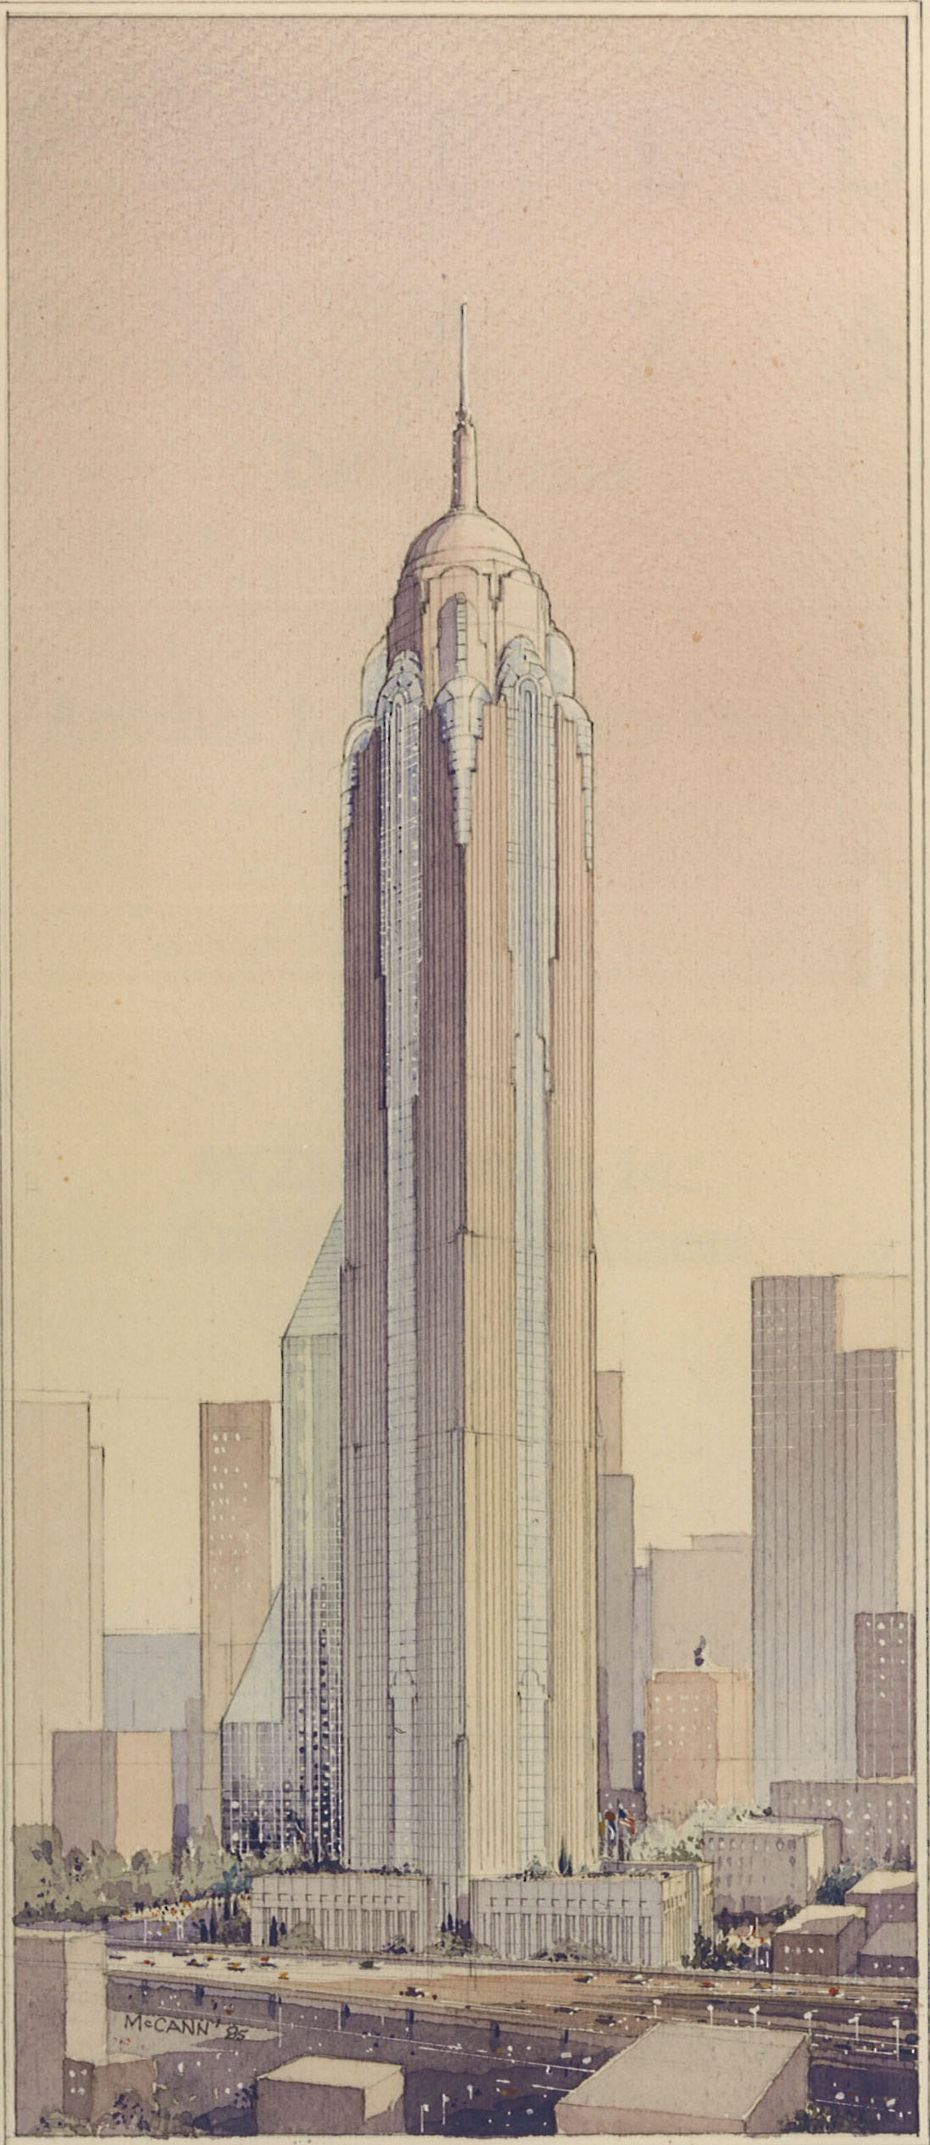 A 100-story tower proposed for Dallas in the 1980s